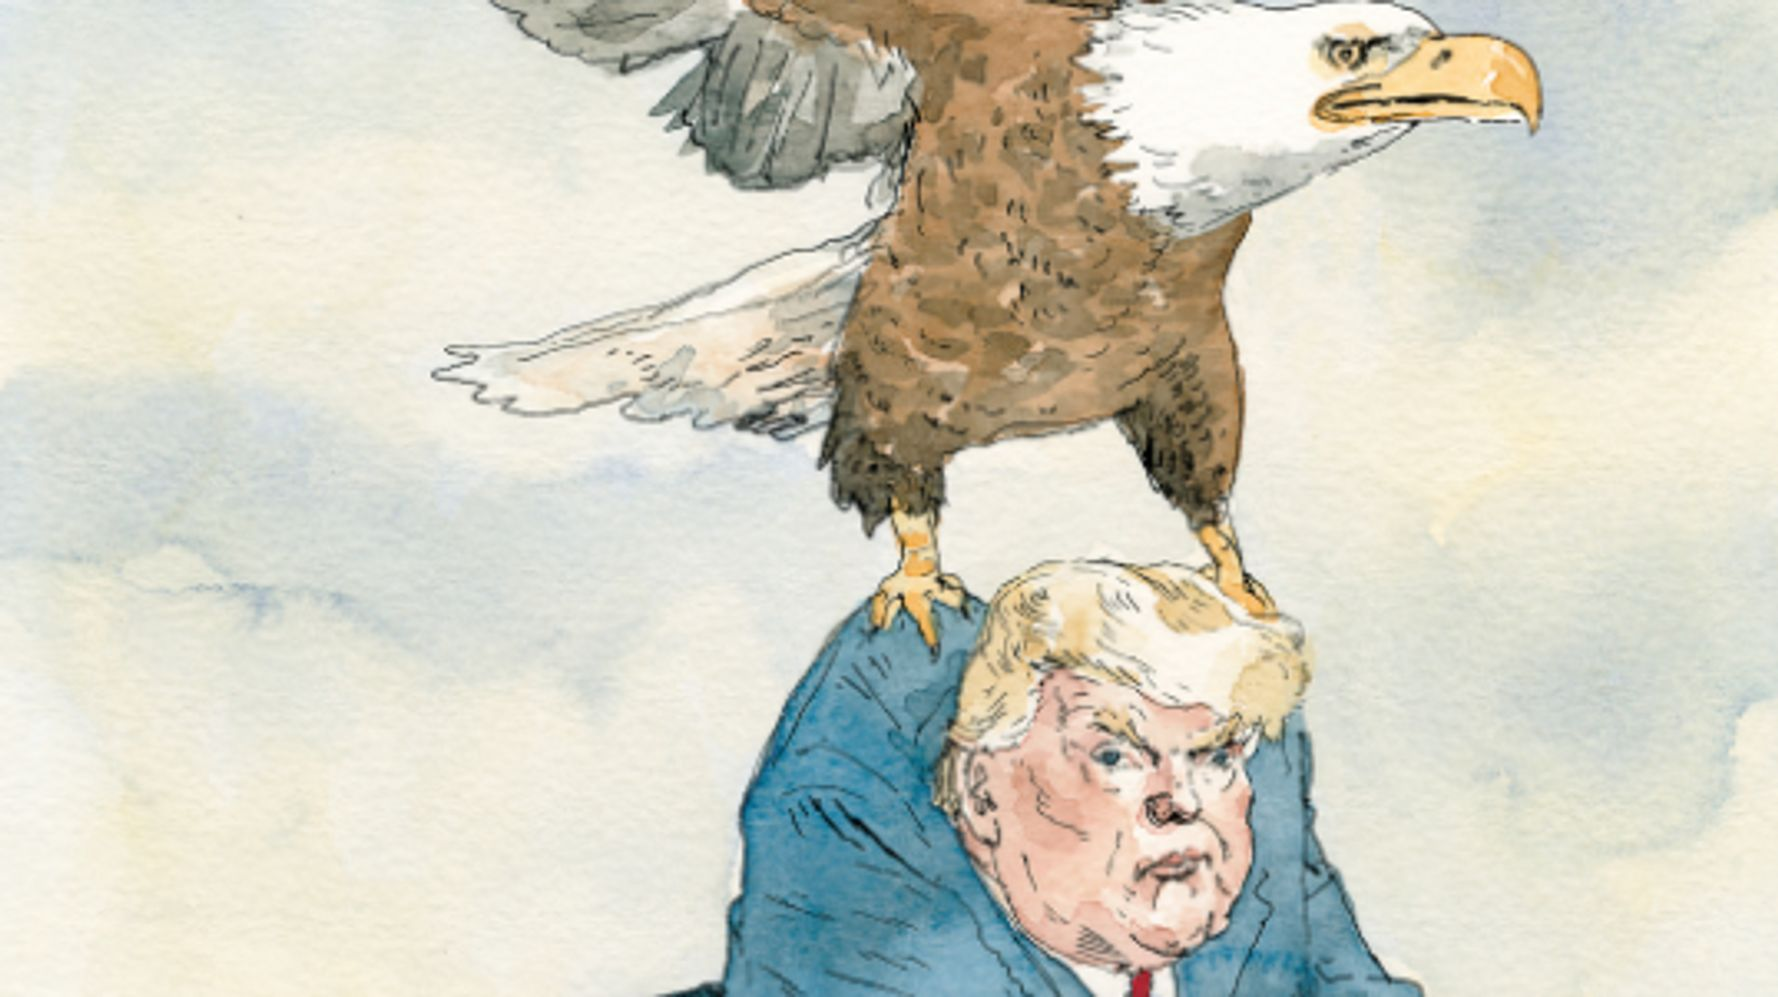 Donald Trump's Final Flight Out Of D.C. Gets The New Yorker Treatment